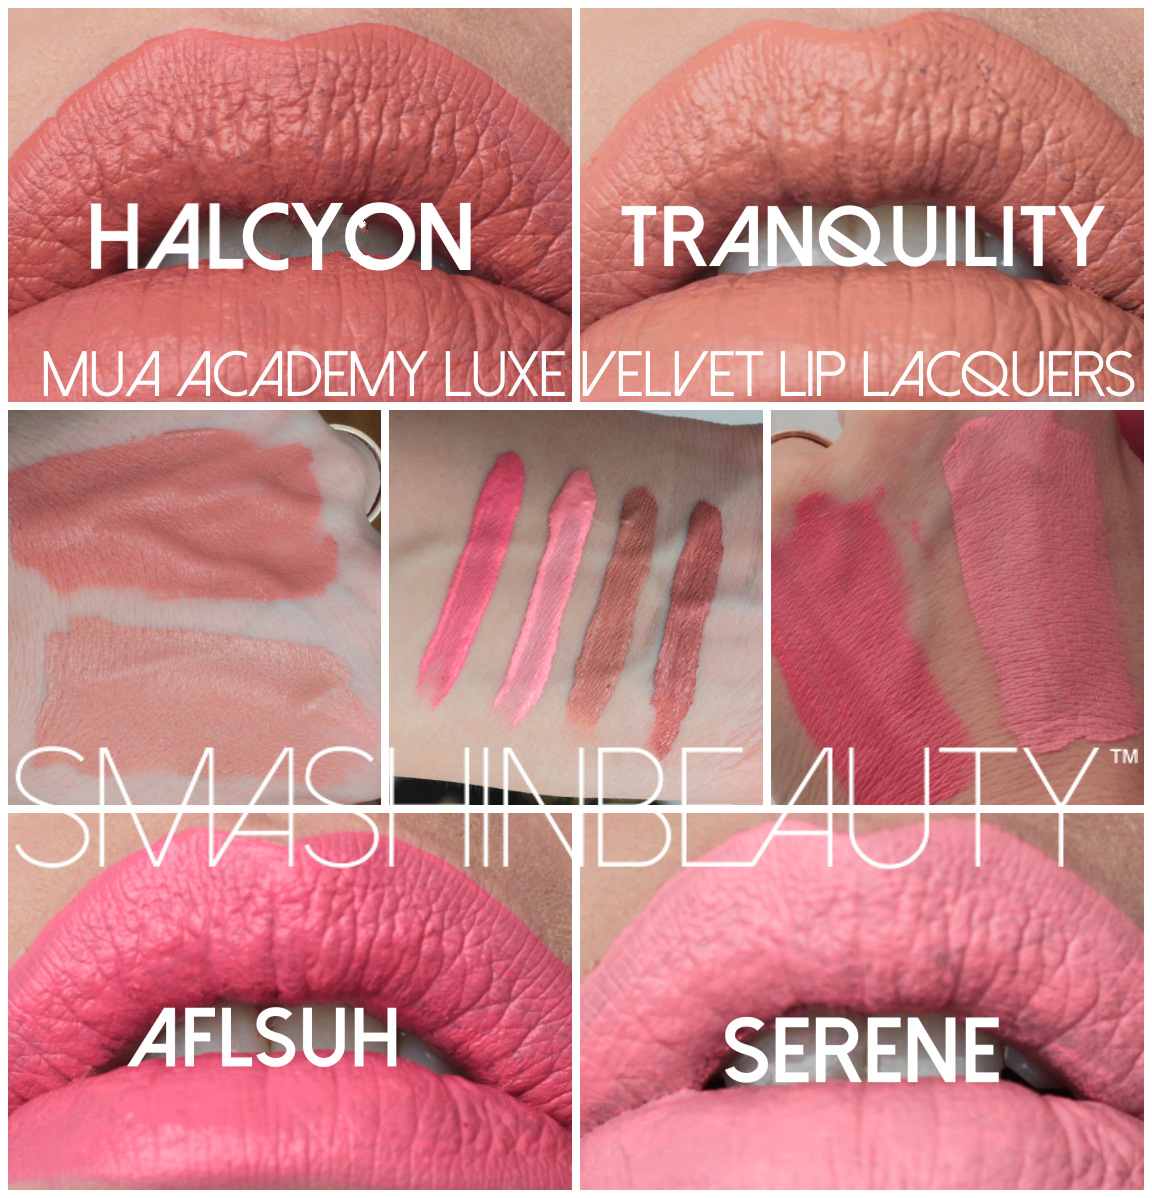 MUA academy luxe velvet lip lacquers in tranquility